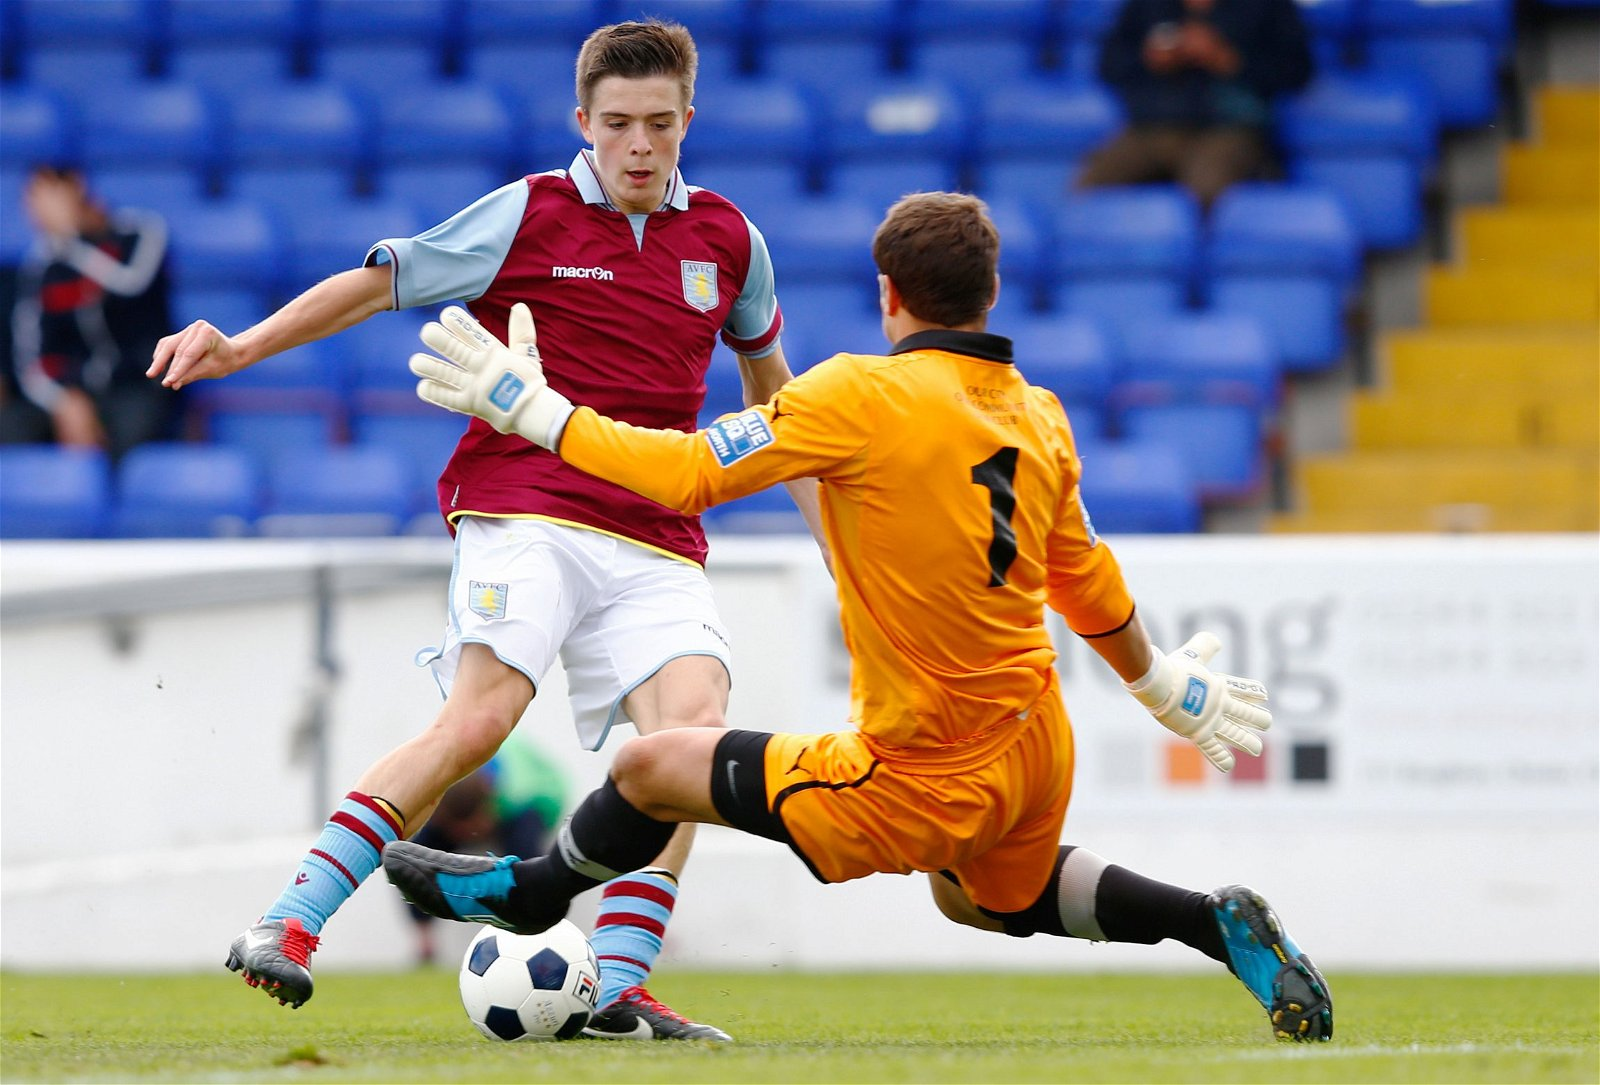 Jack Grealish in action for Aston Villa in 2012